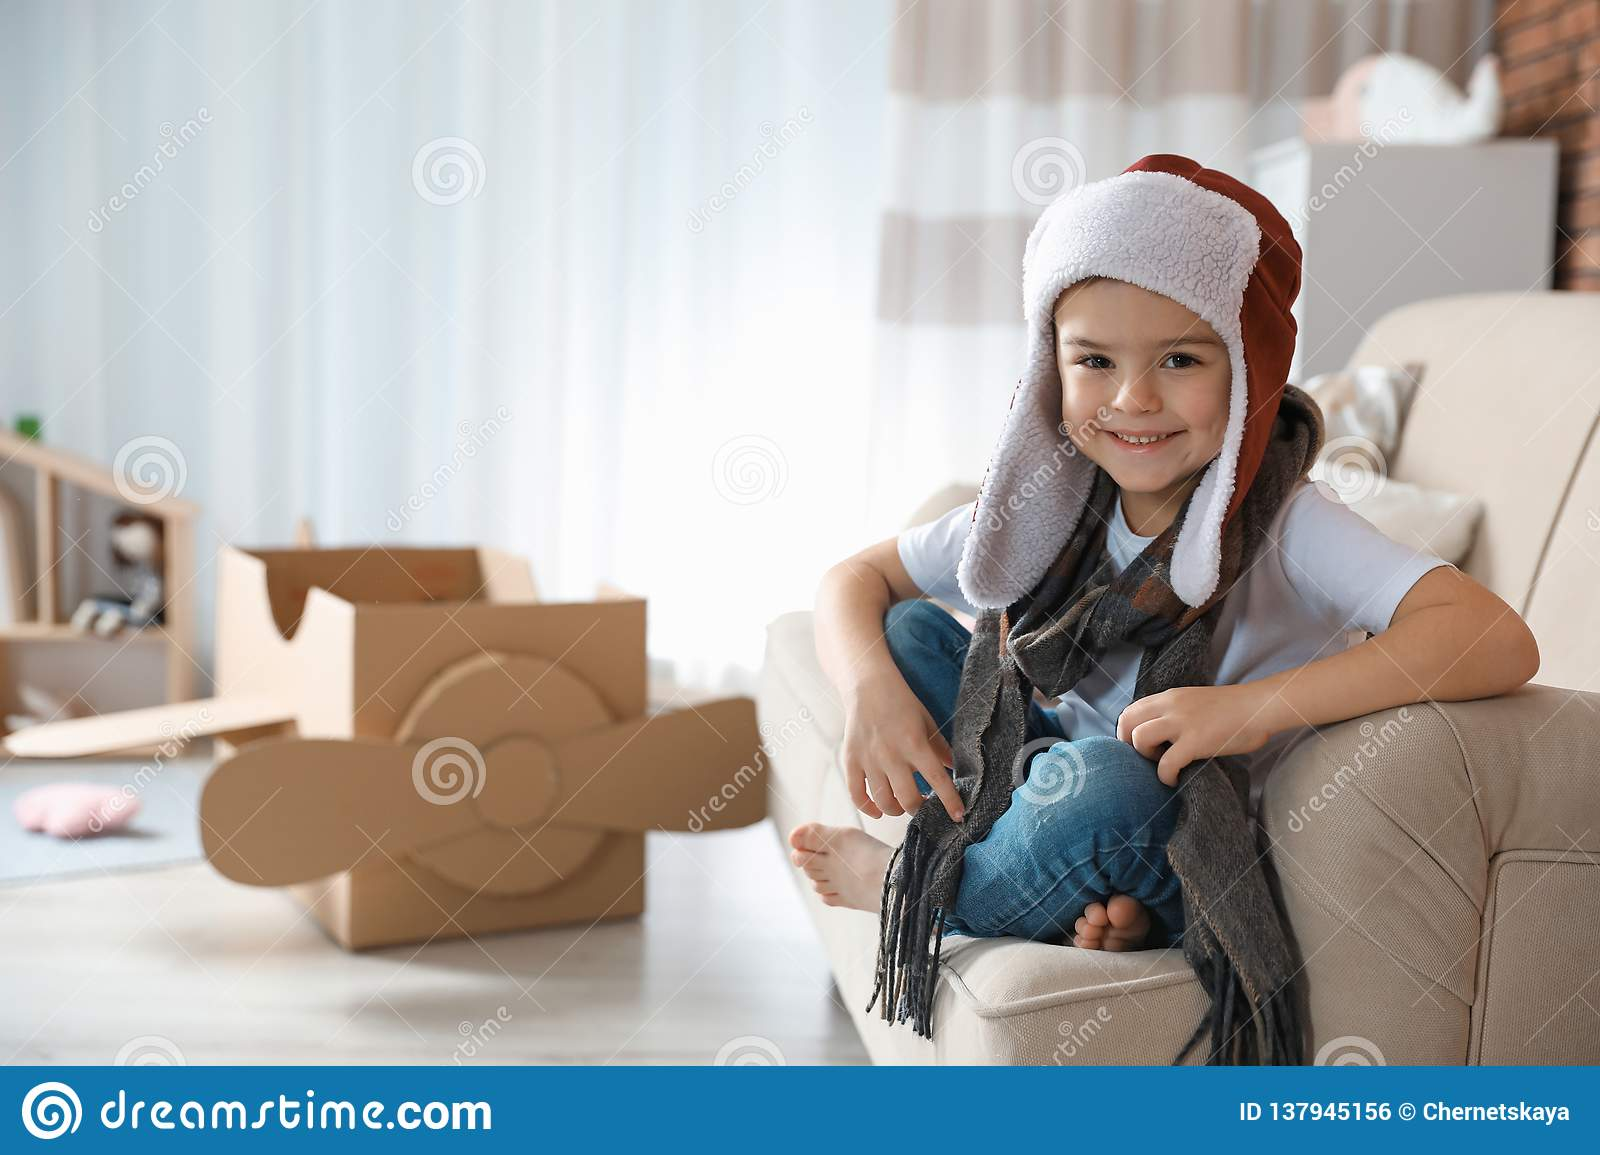 Cute little boy in pilot hat and blurred cardboard airplane on background.